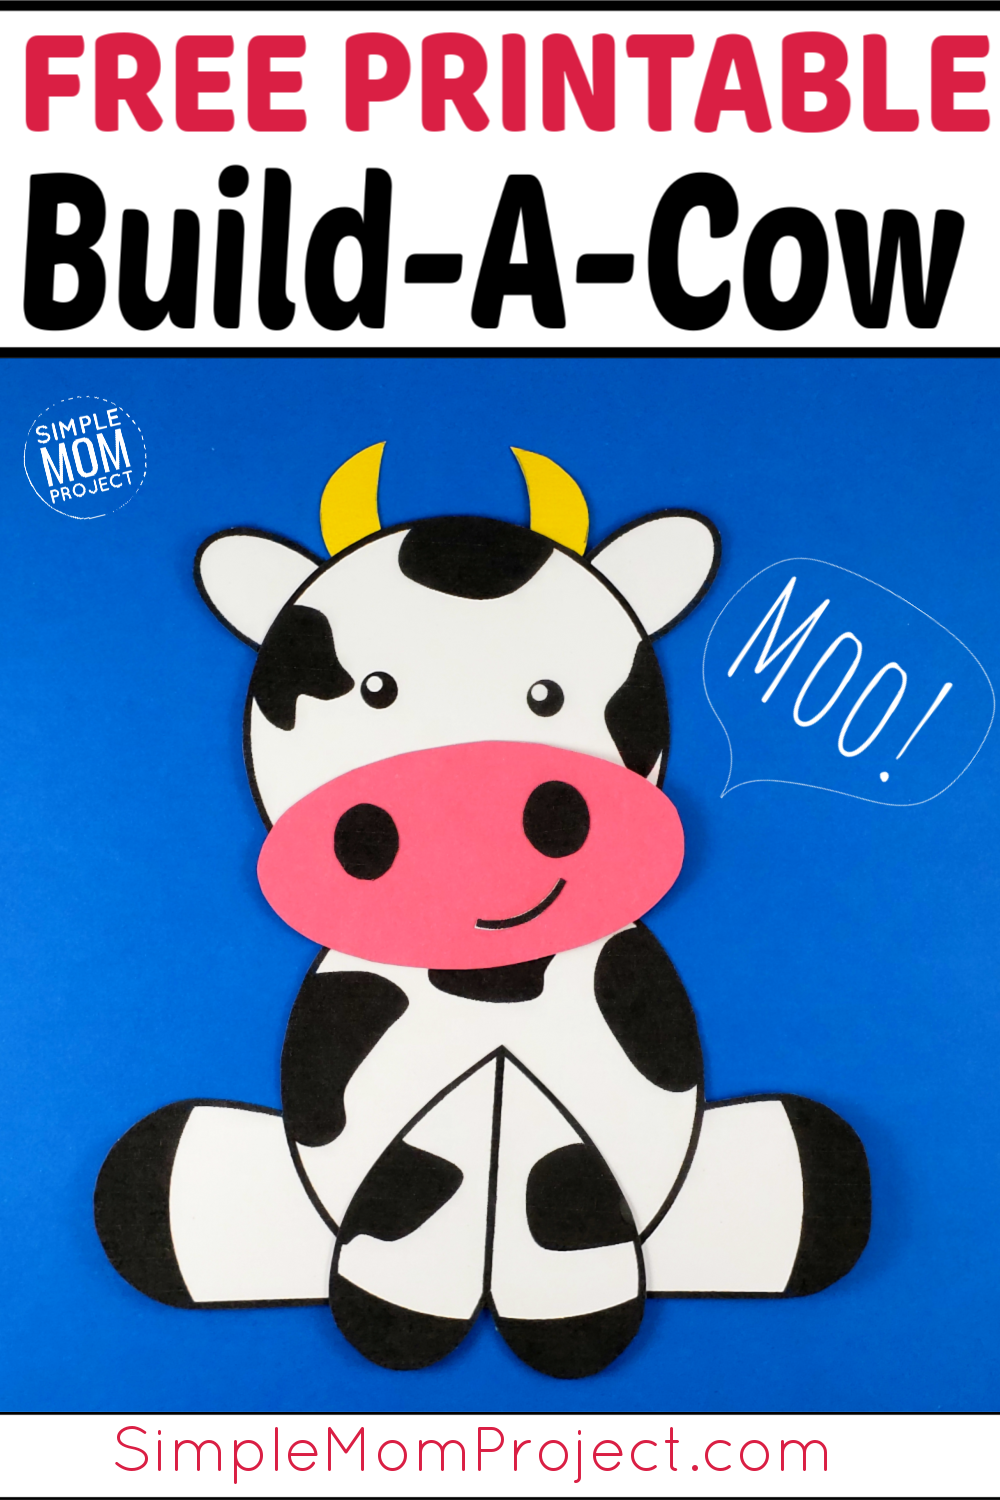 Cute And Fun Farm Craft Cow Art Project Cow Craft Farm Craft Pig Crafts [ 1500 x 1000 Pixel ]